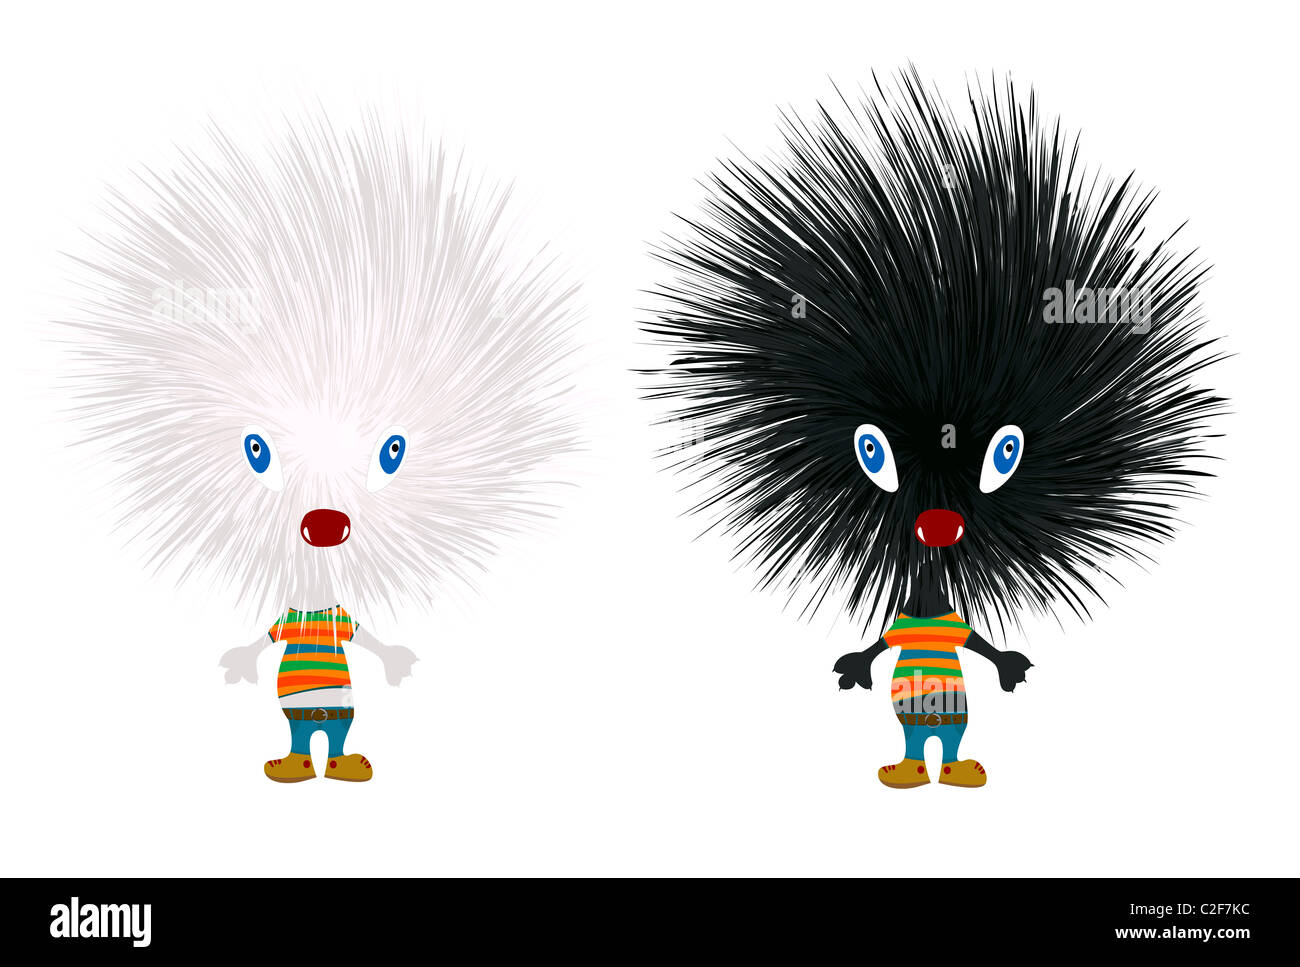 Stylized hedgehogs - Stock Image